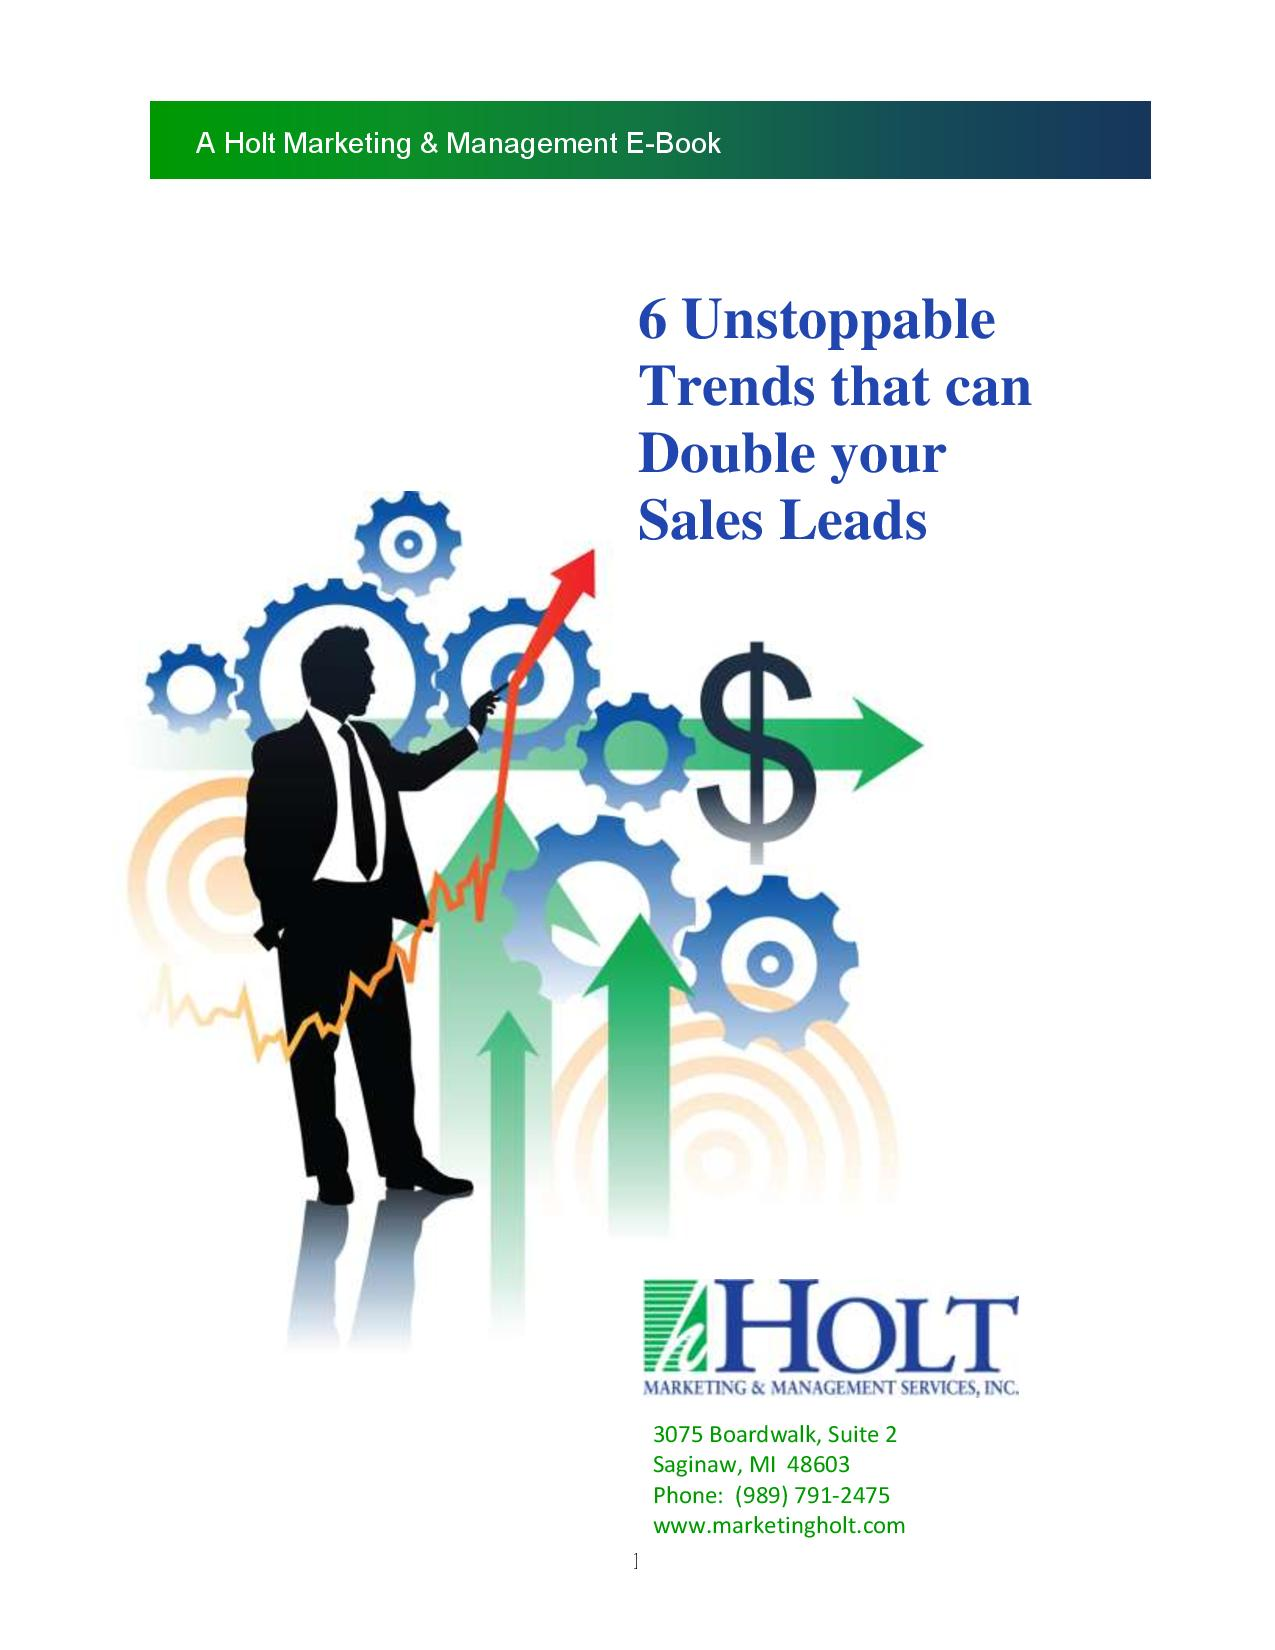 Double Sales Leads cover